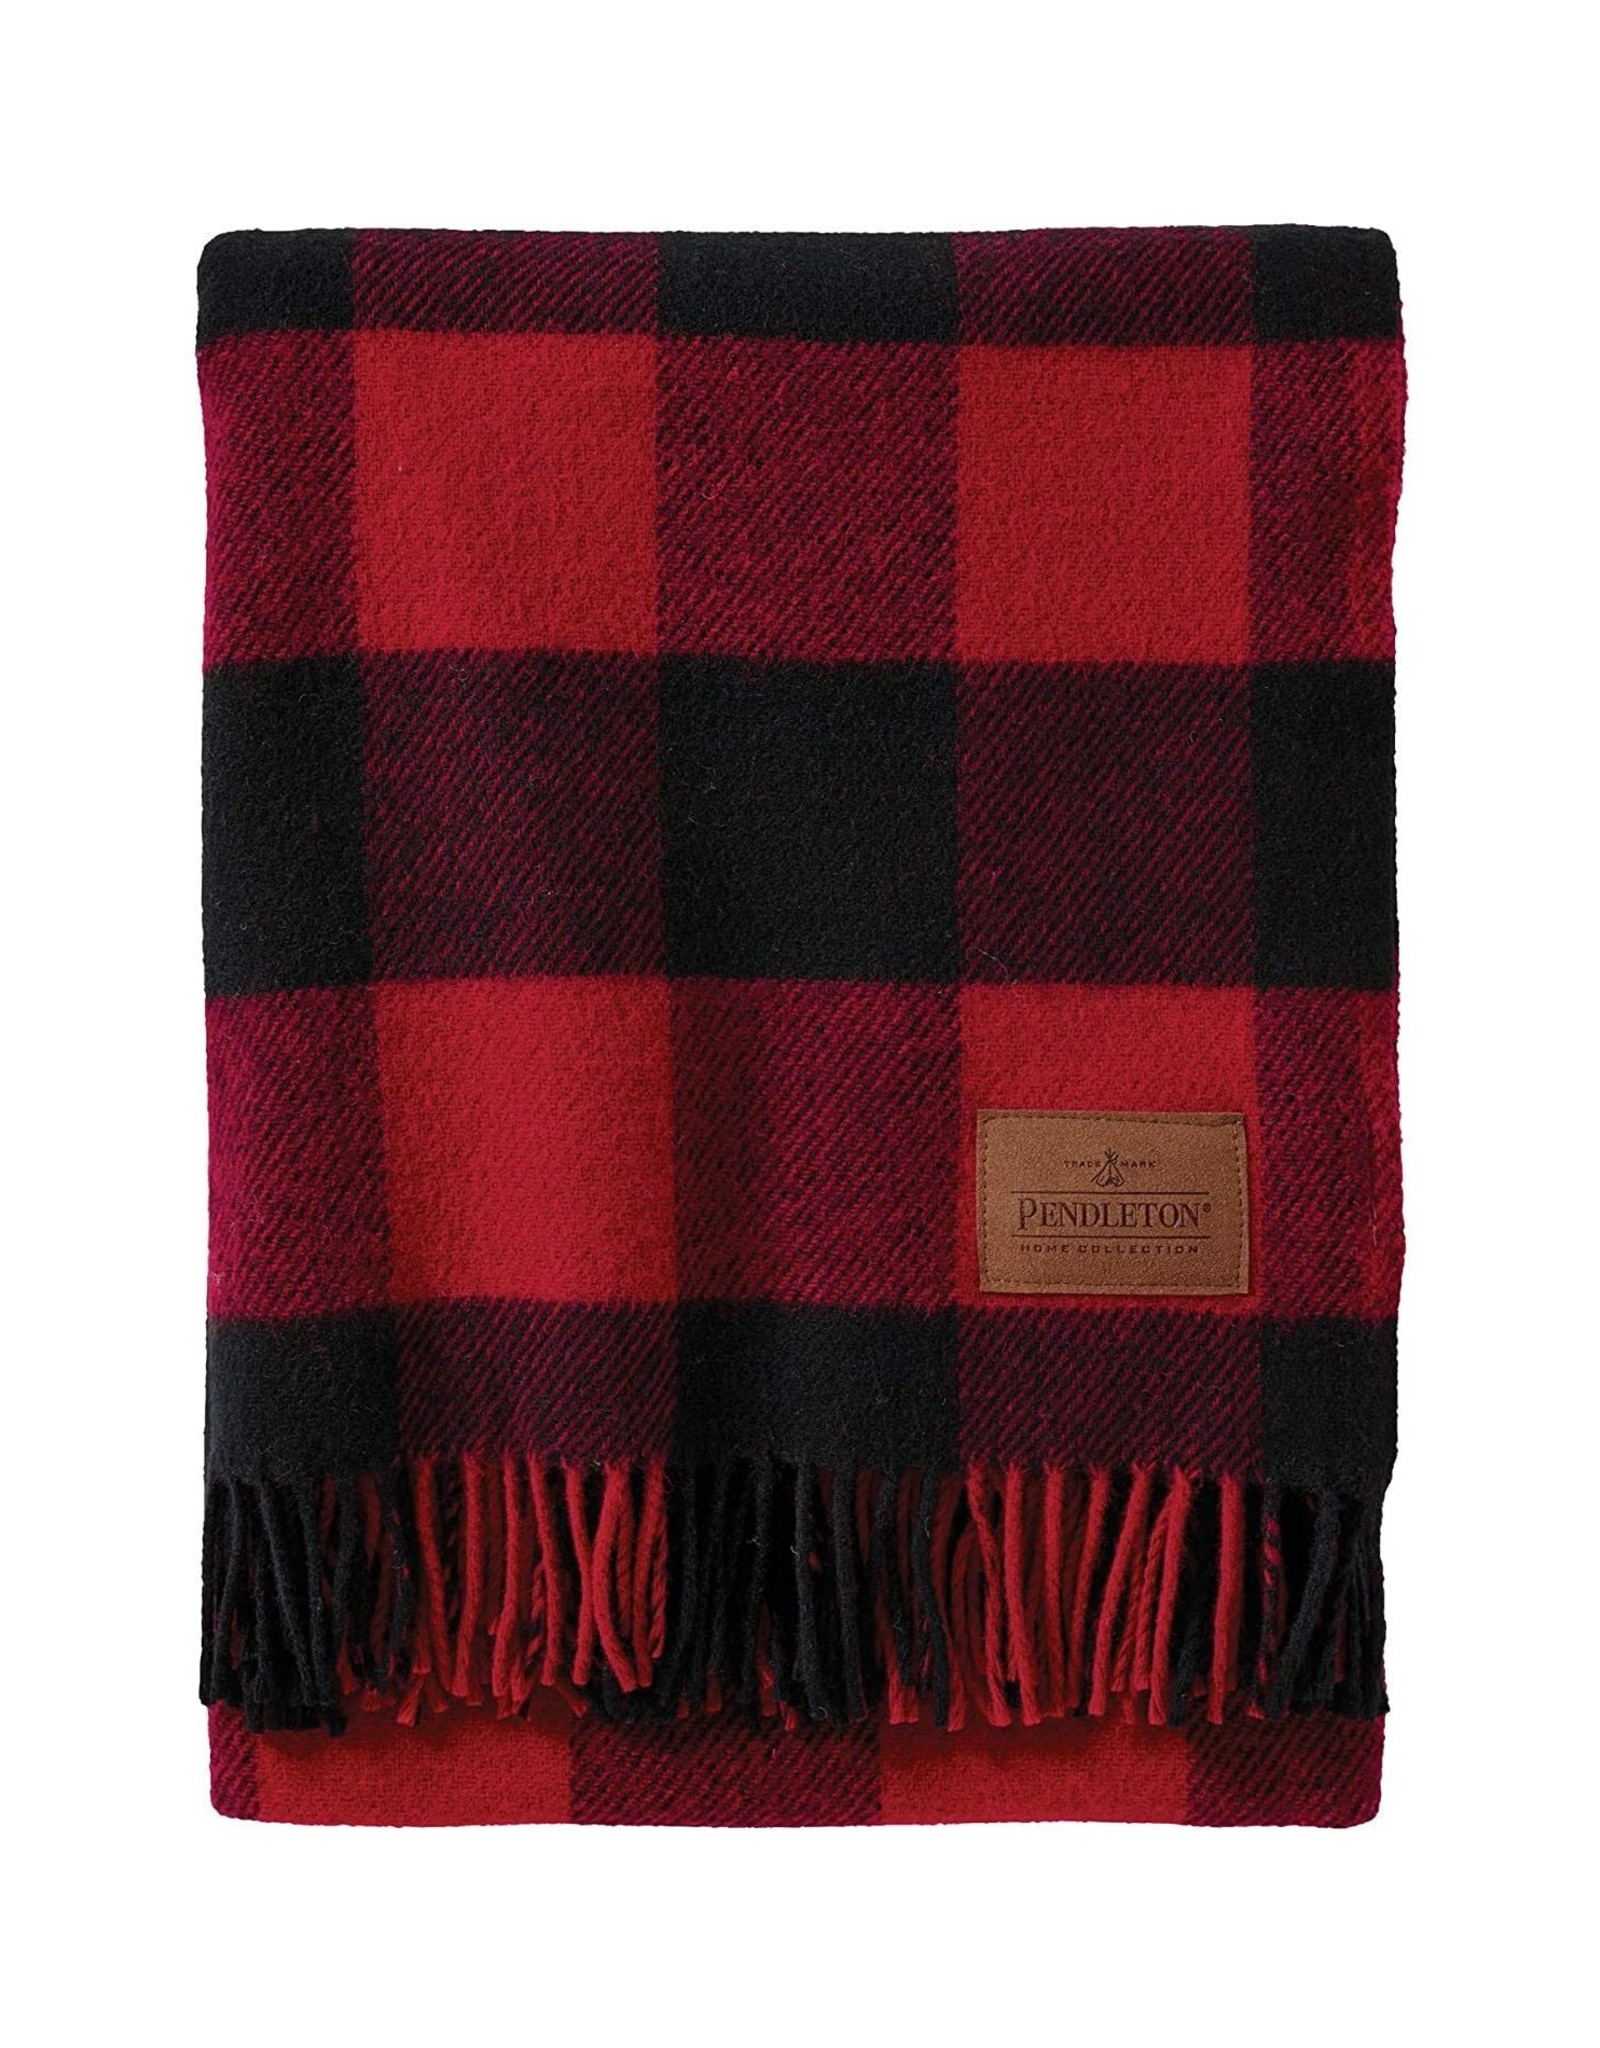 PENDLETON BLANKET MOTOR ROBE WITH LEATHER CARRIER ROB ROY